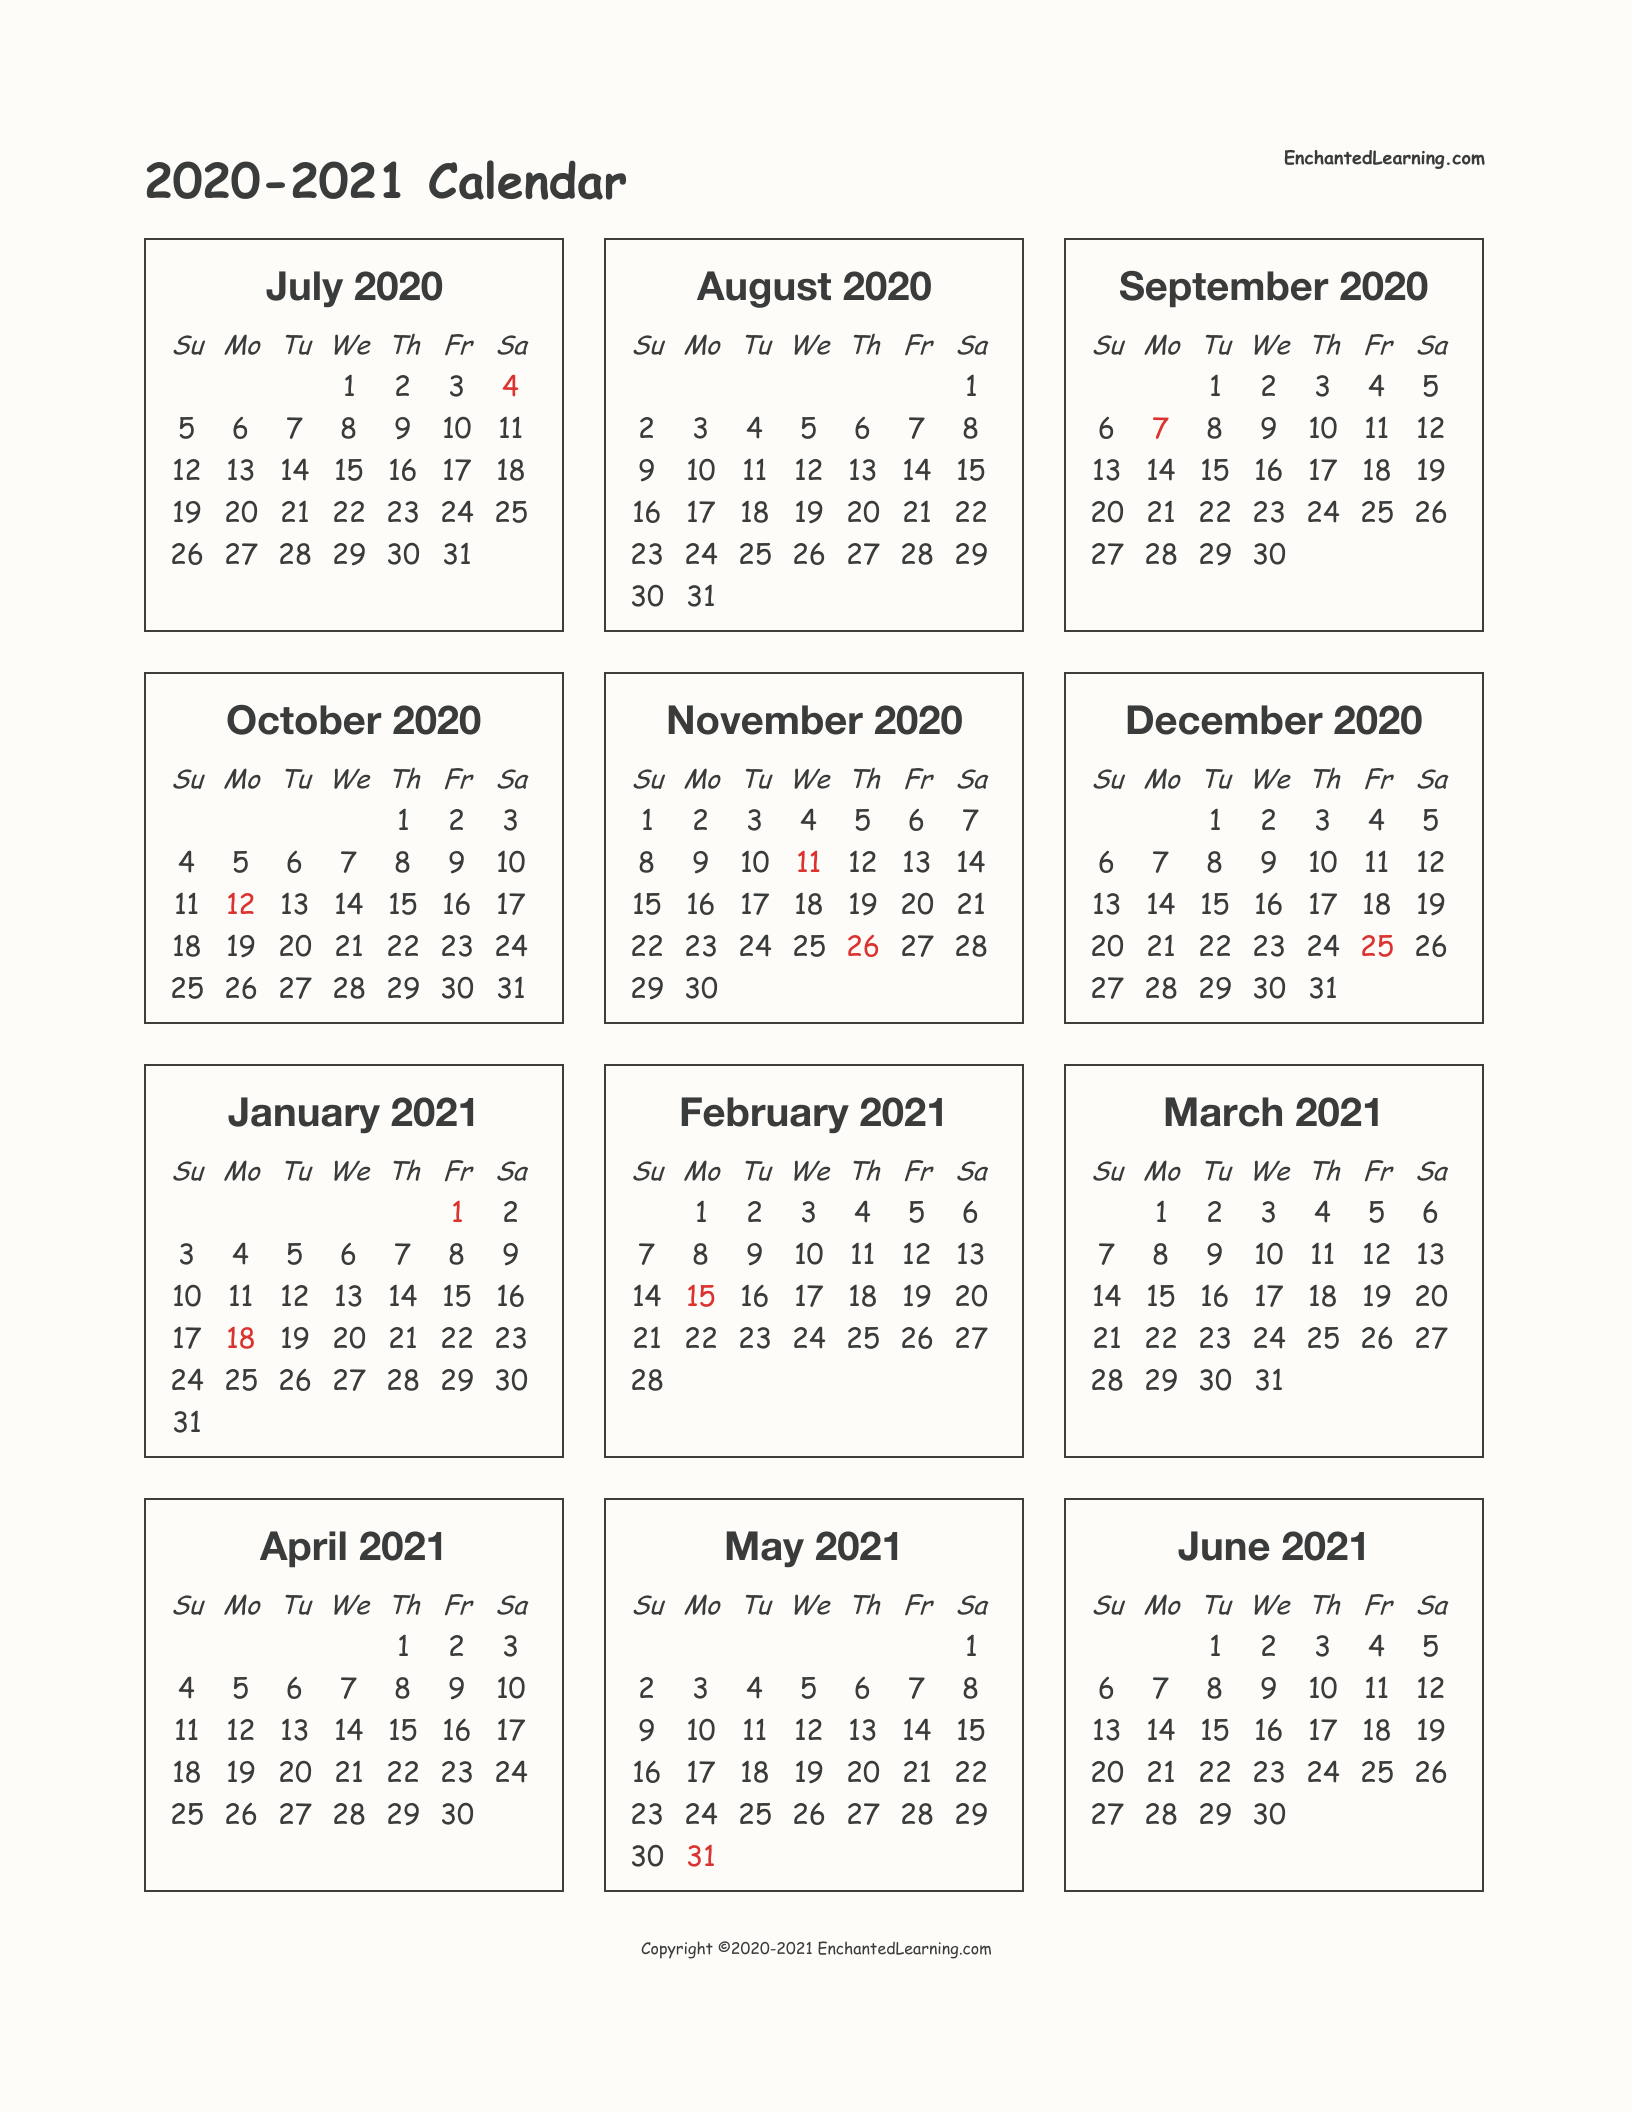 2020-2021 School-Year One-Page Calendar - Enchanted Learning